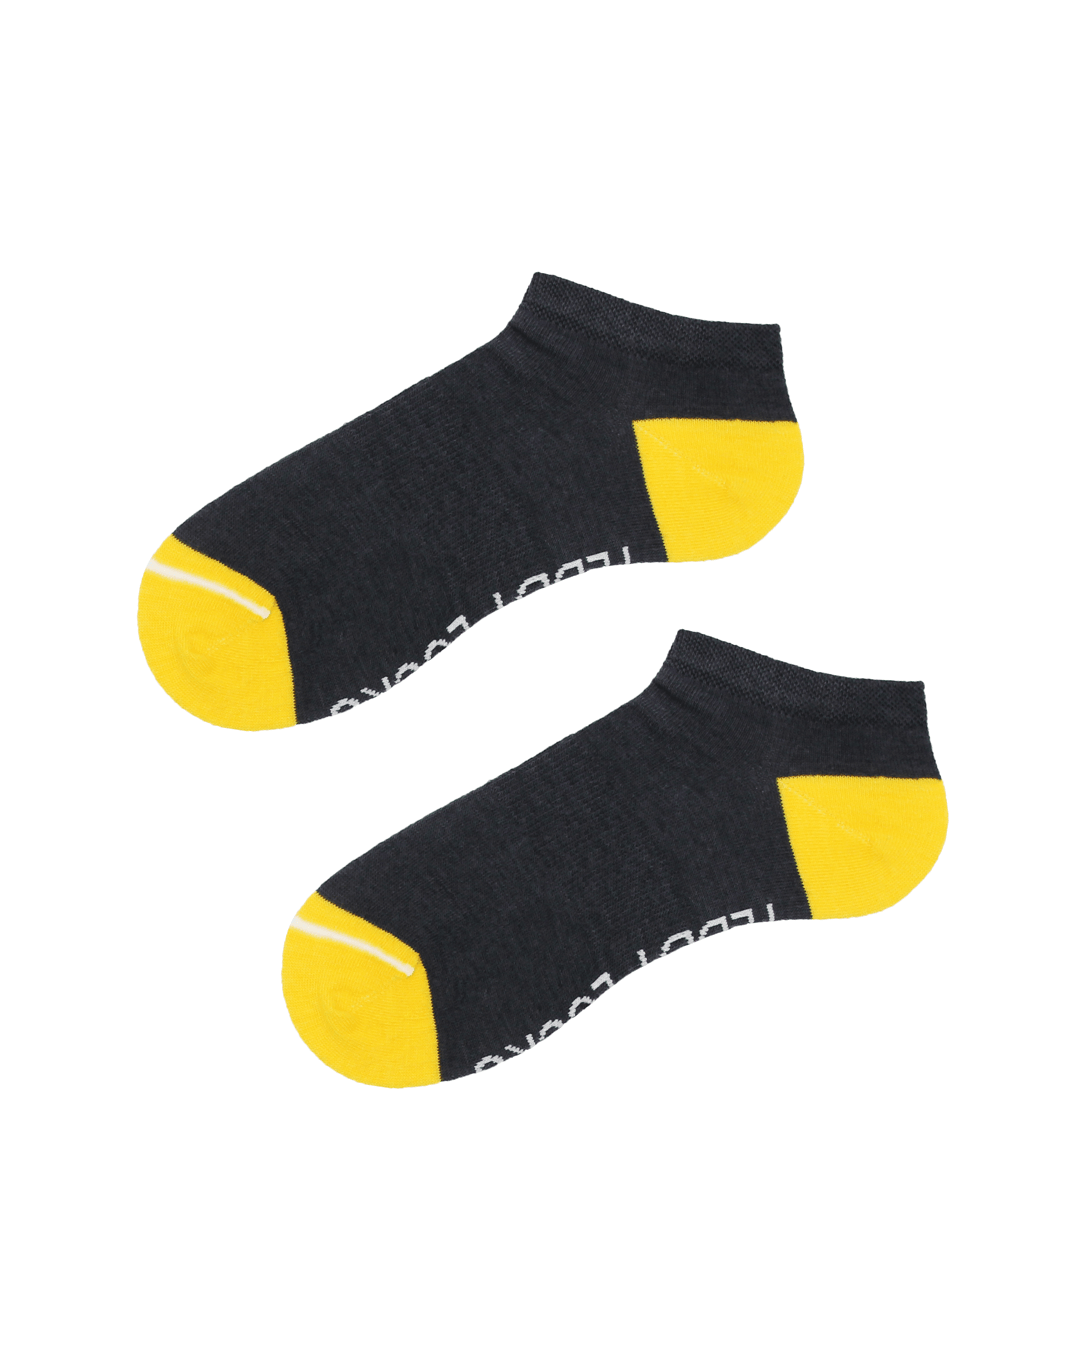 Dark Grey athletic socks. Low cut socks made from recycled plastic bottles